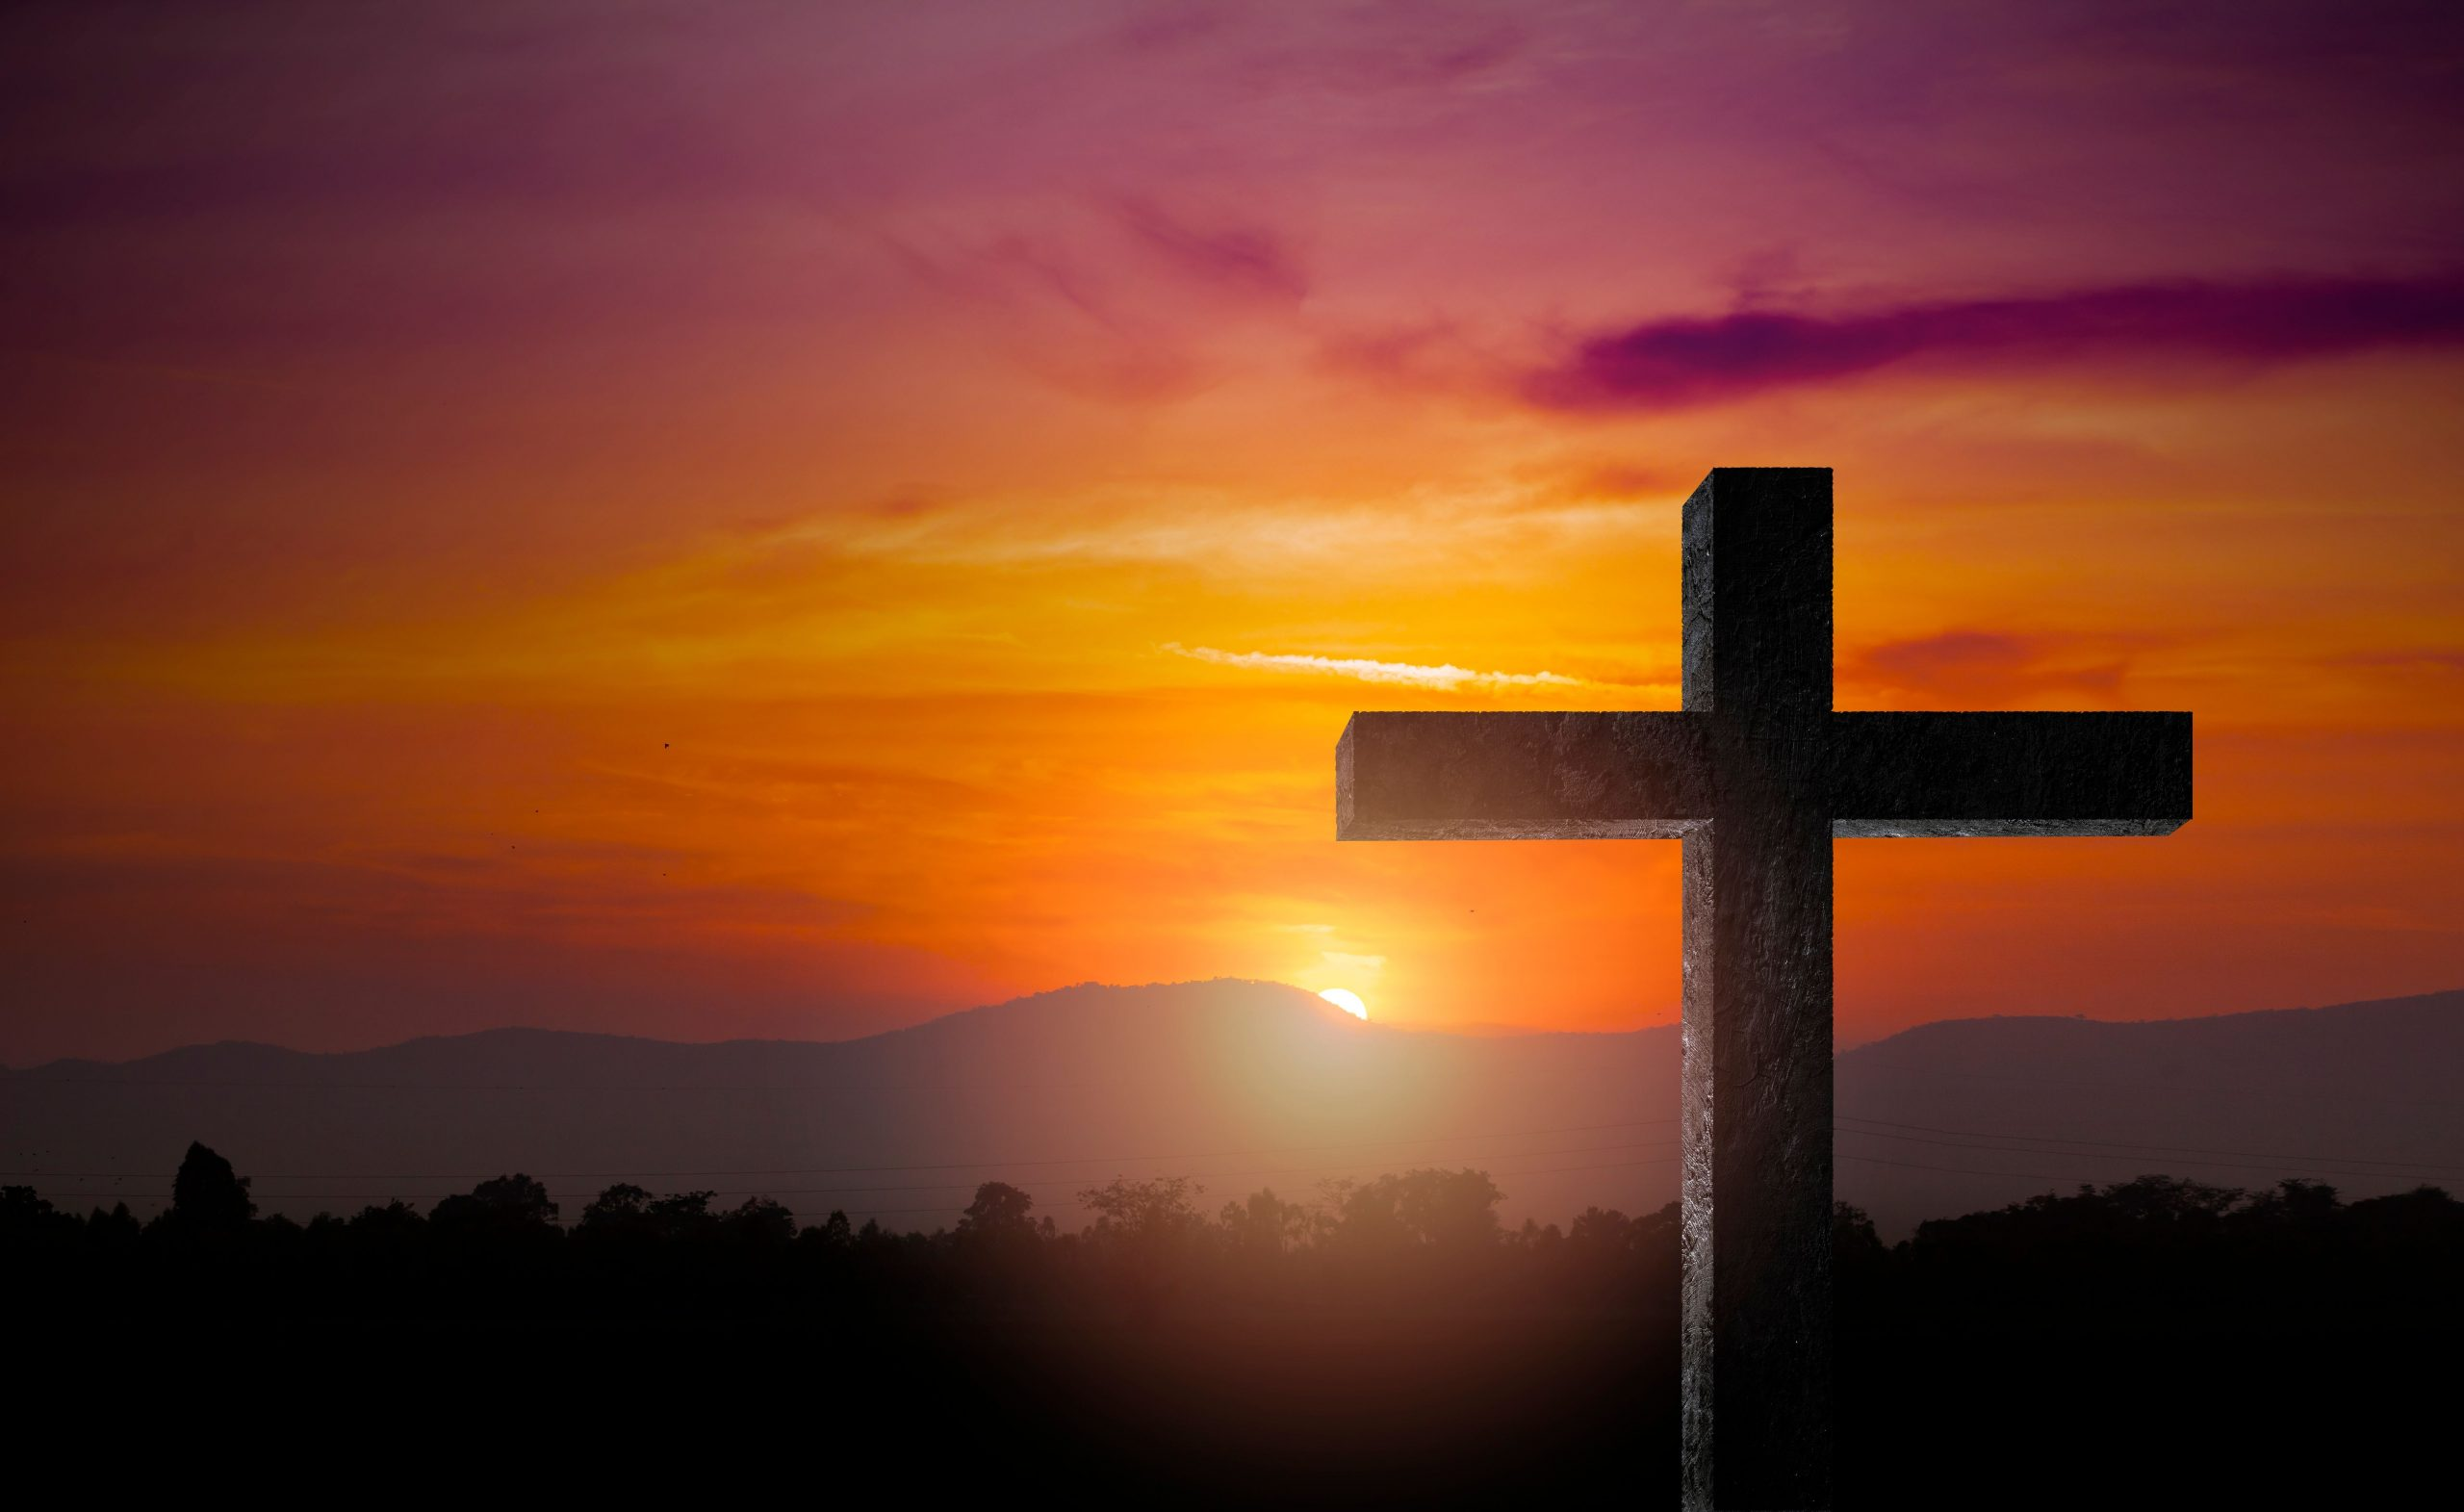 silhouette-of-crucifix-cross-time-for-background-AZD4PVR